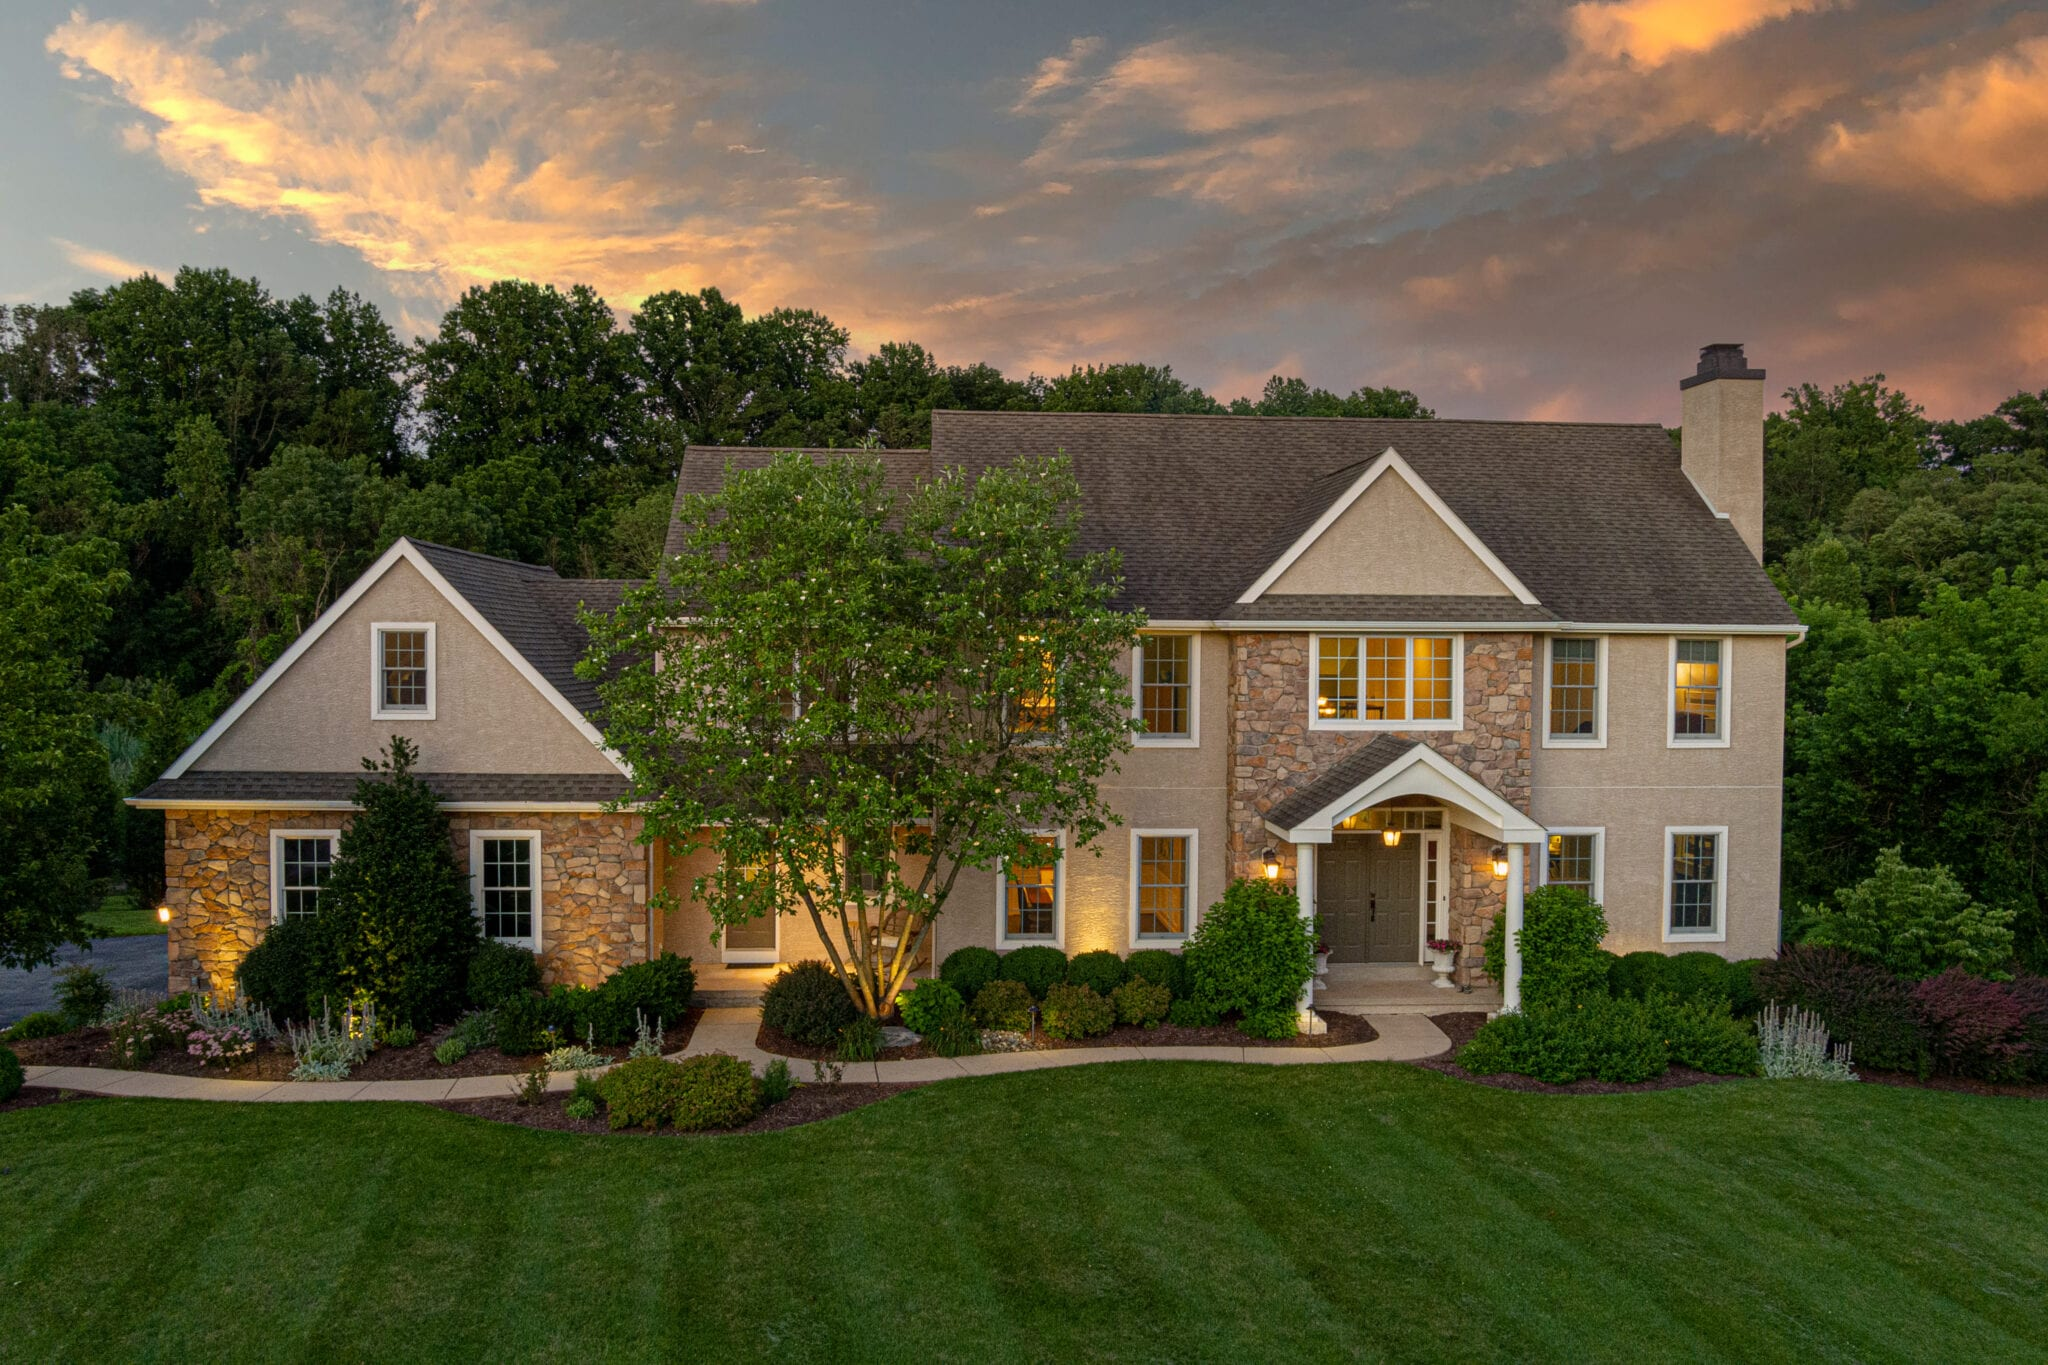 REAL ESTATE PHOTOGRAPHY CHESTER COUNTY DELAWARE COUNTY MONTGOMERY COUNTY REAL ESTATE PHOTOGRAPHER